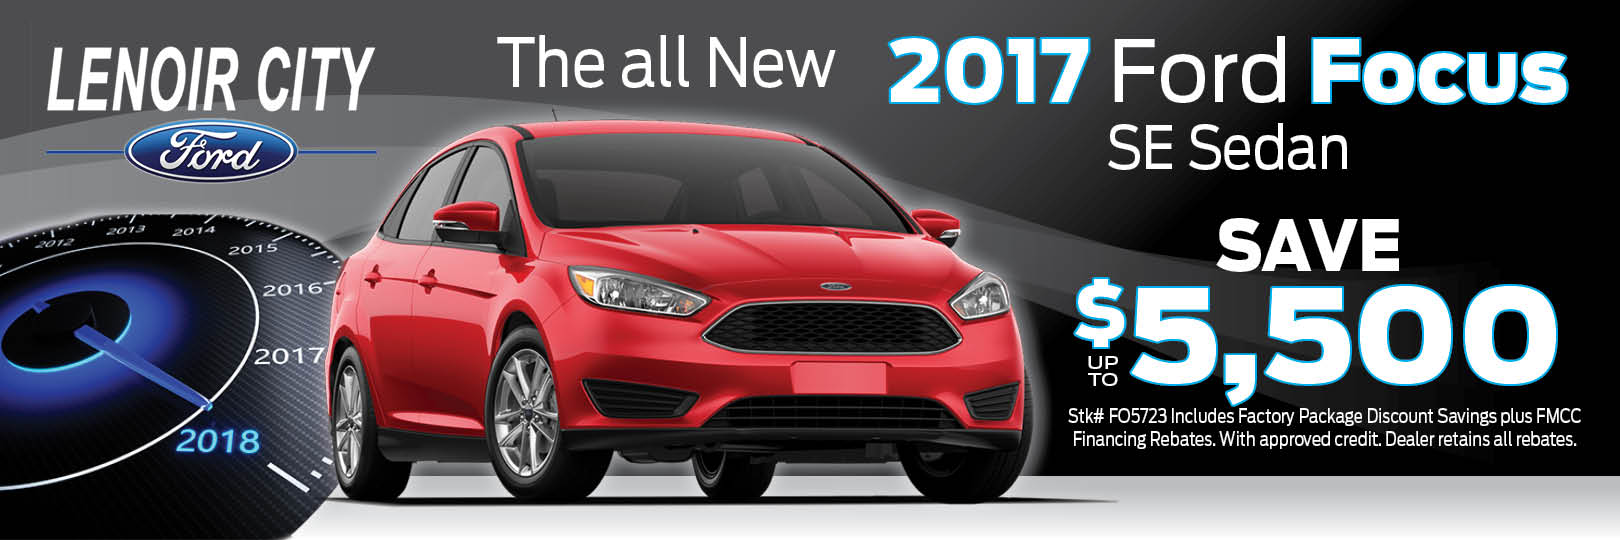 Ford Dealers Knoxville Tn Area Best Image FiccioNet - Knoxville ford dealers